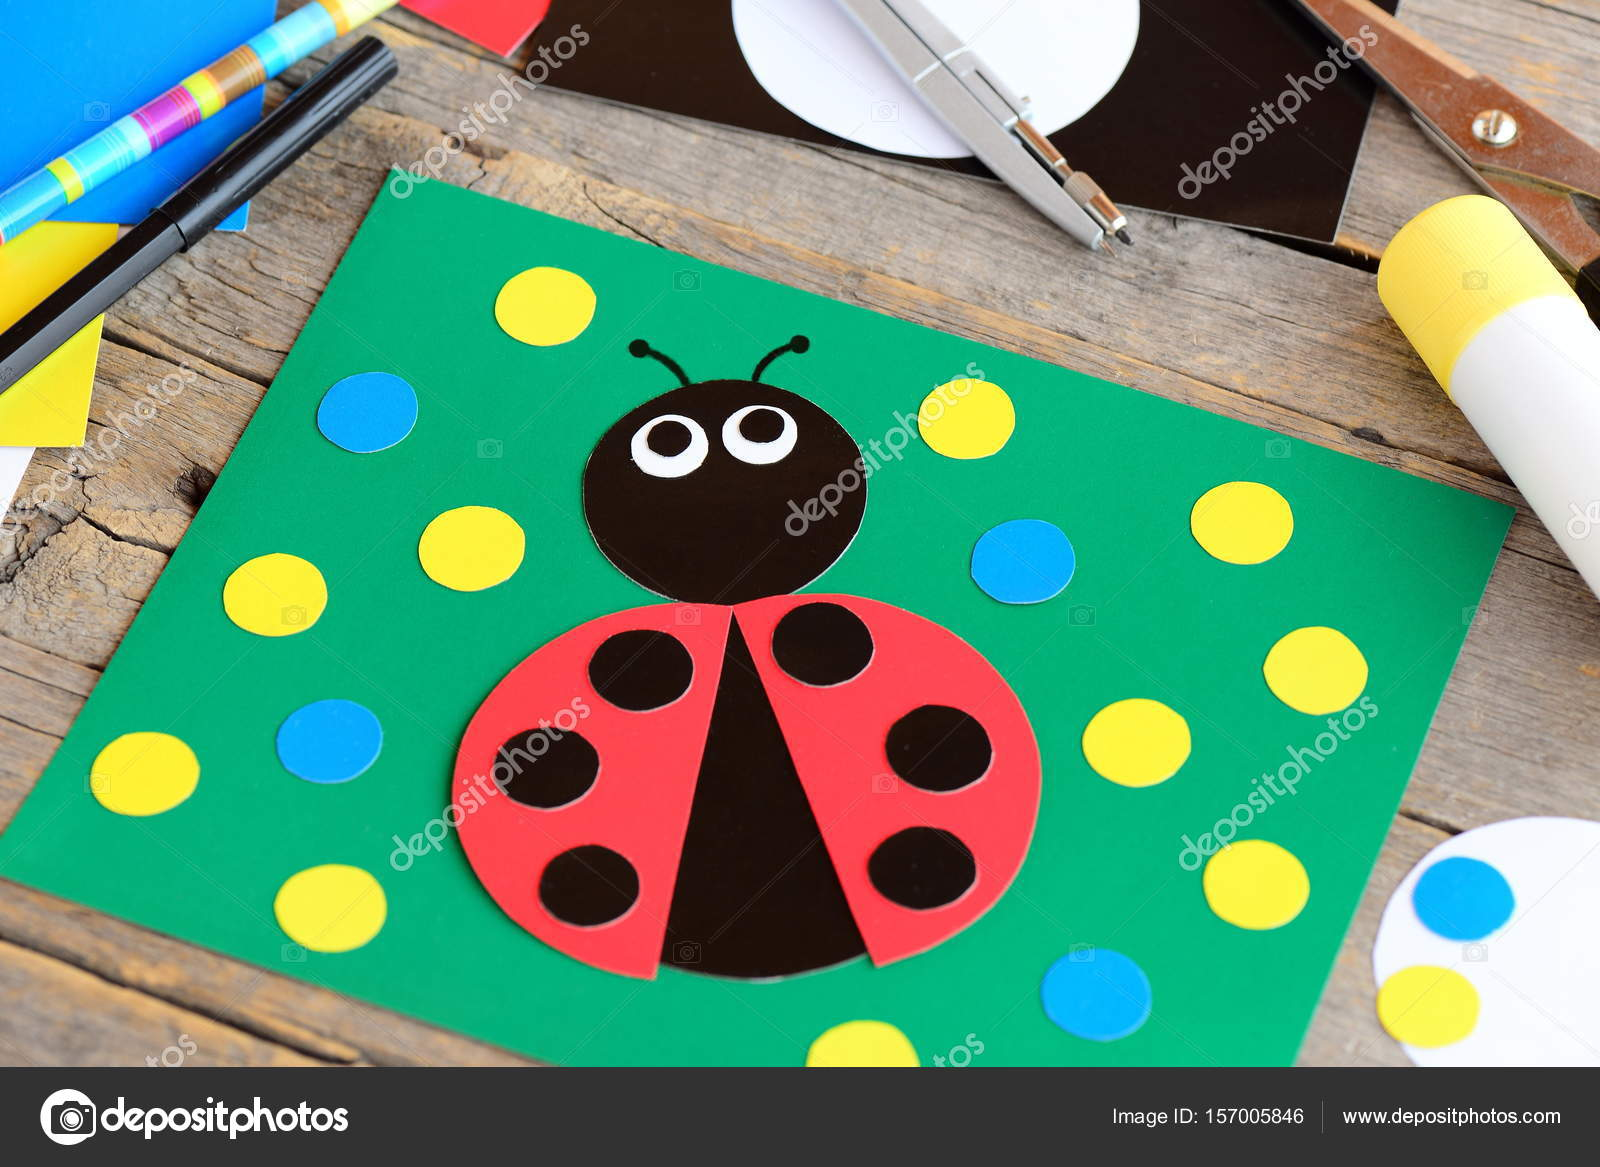 Ladybug Paper Collage Ladybug Card Stationery On A Vintage Wooden